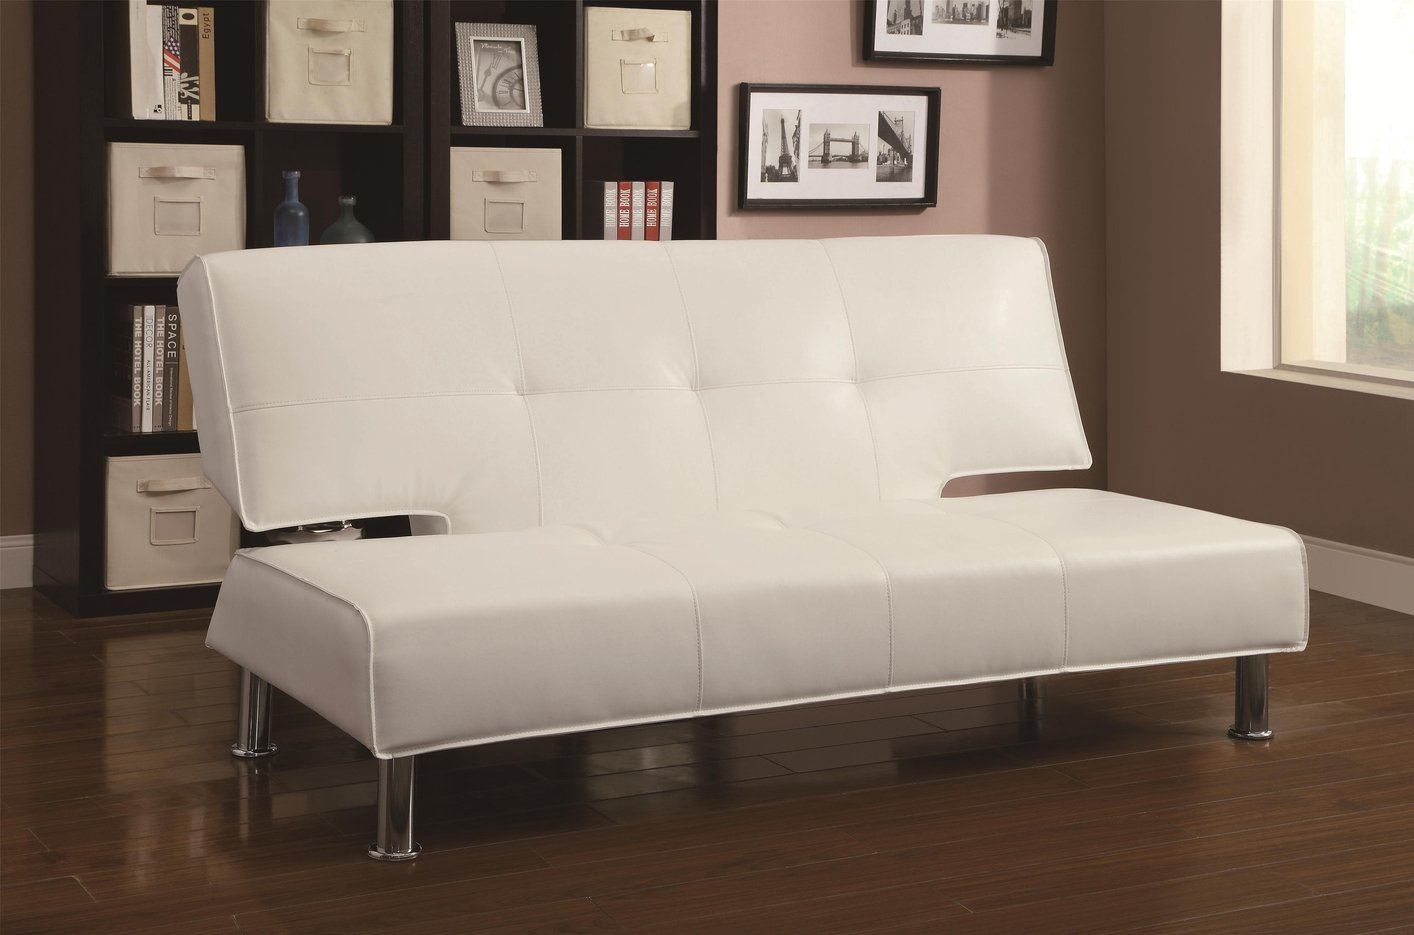 Coaster 300296 white leather sofa bed steal a sofa for White divan bed